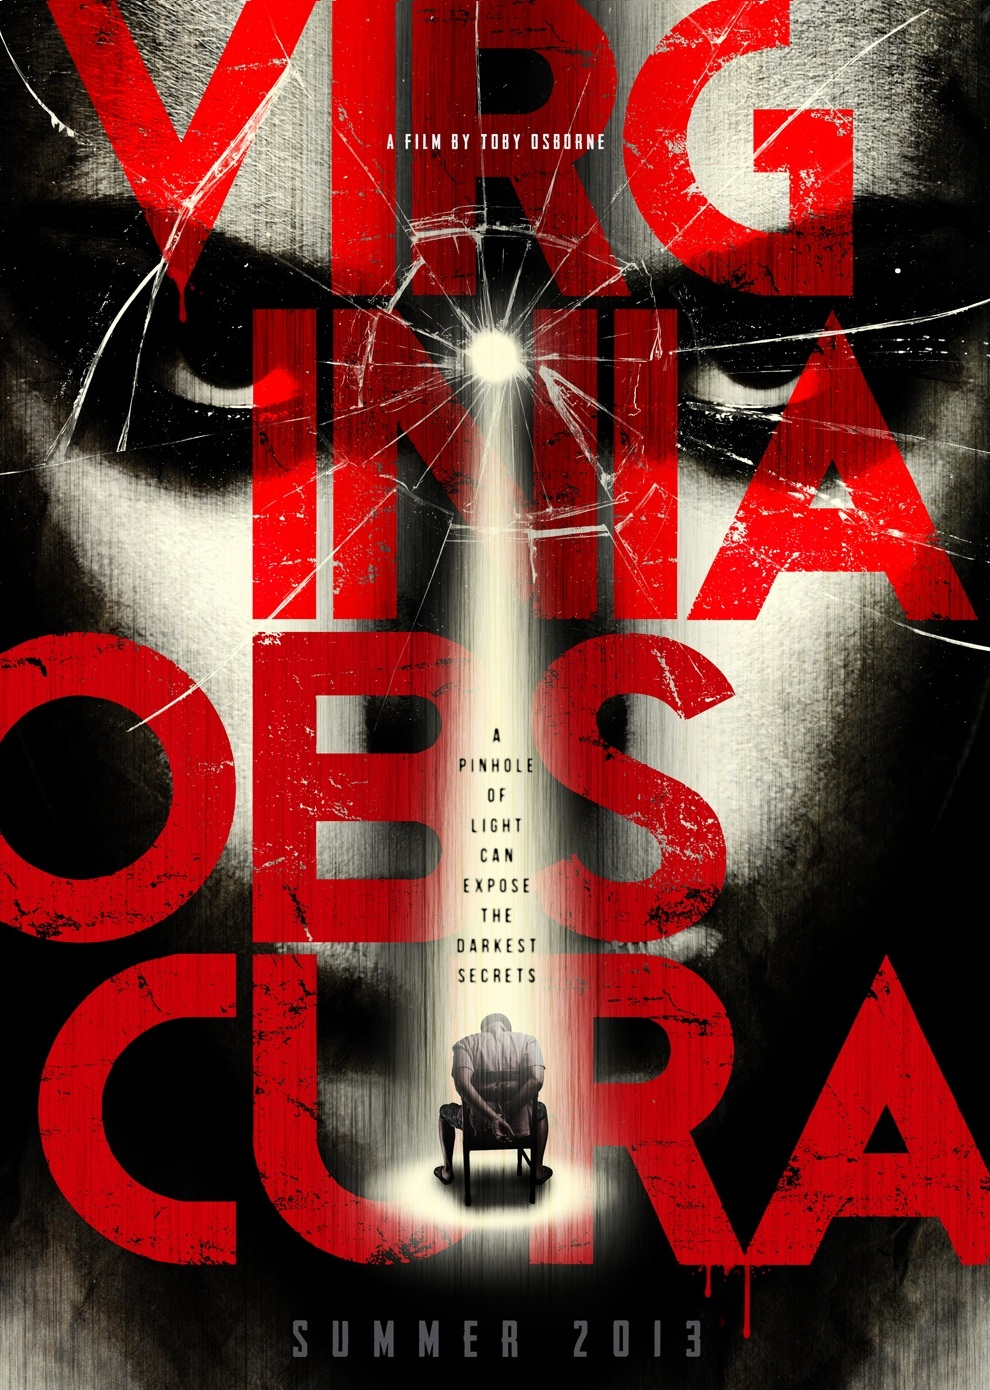 Horror Film Virginia Obscura Slashing Scares with Poster